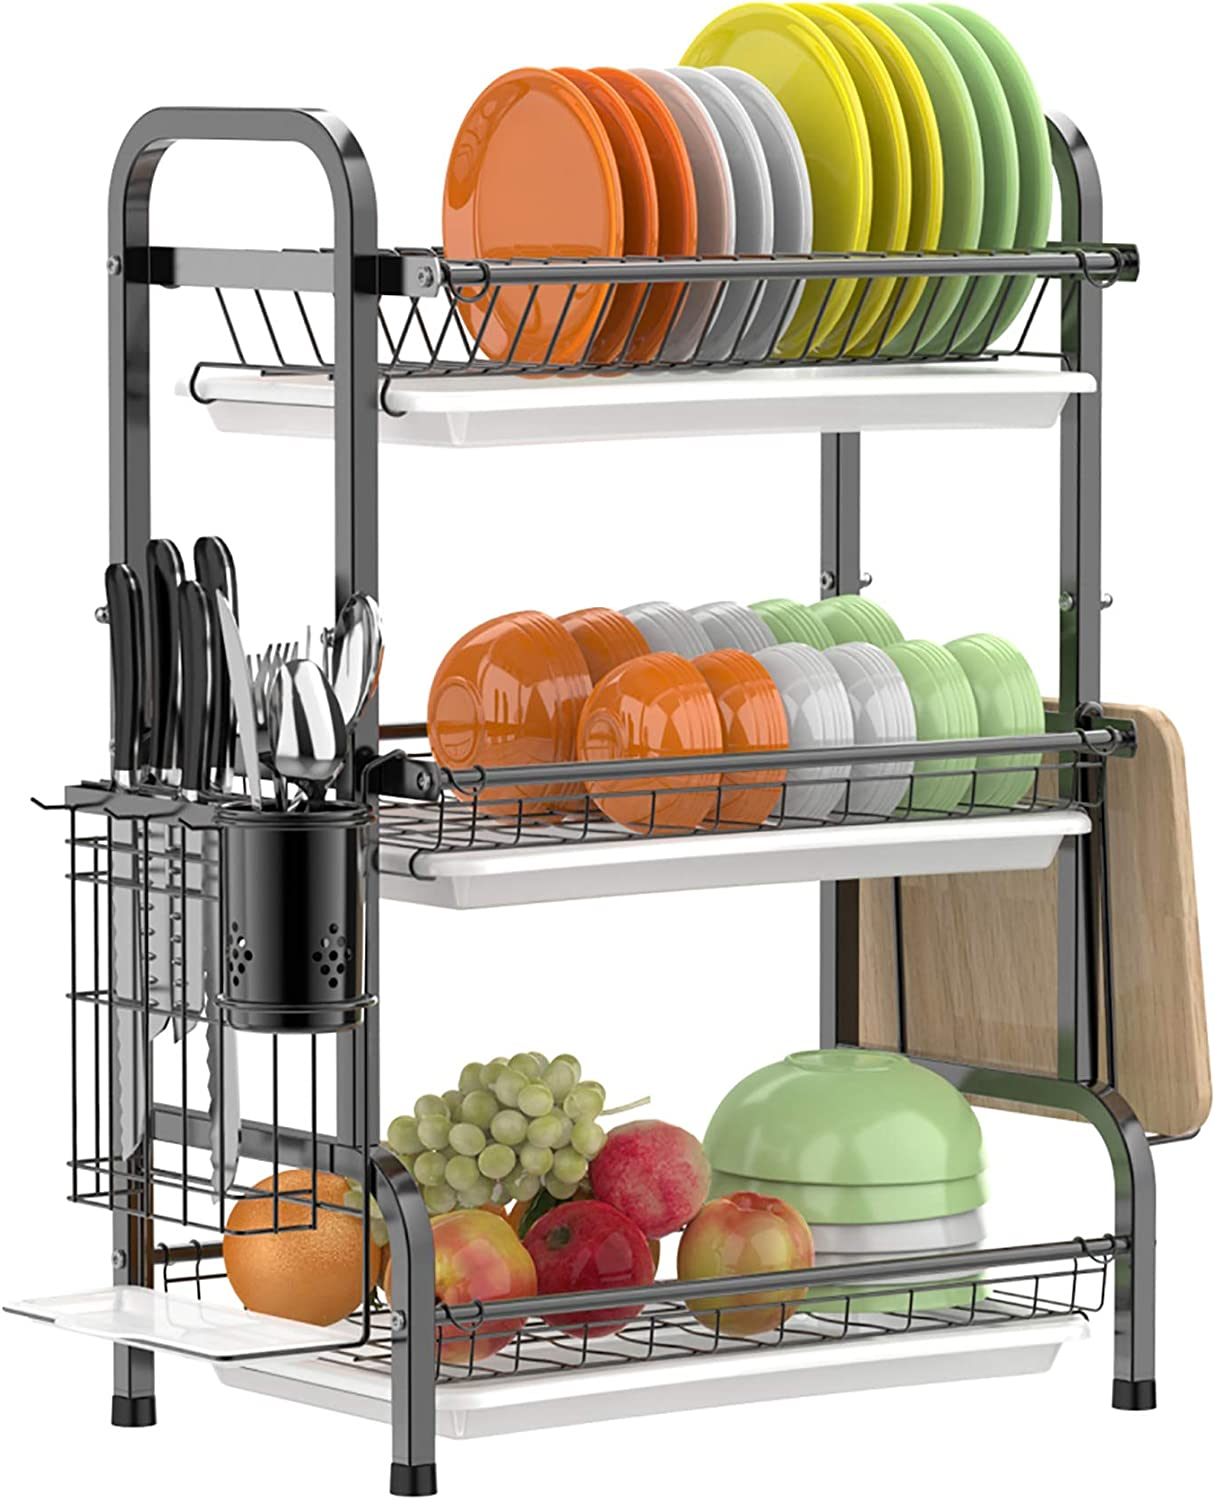 Dish Drying Rack Gslife Stainless Steel 3 Tier Dish Rack With Tray Utensil Holder Rustproof Dish Drainer For Kitchen Counter Black